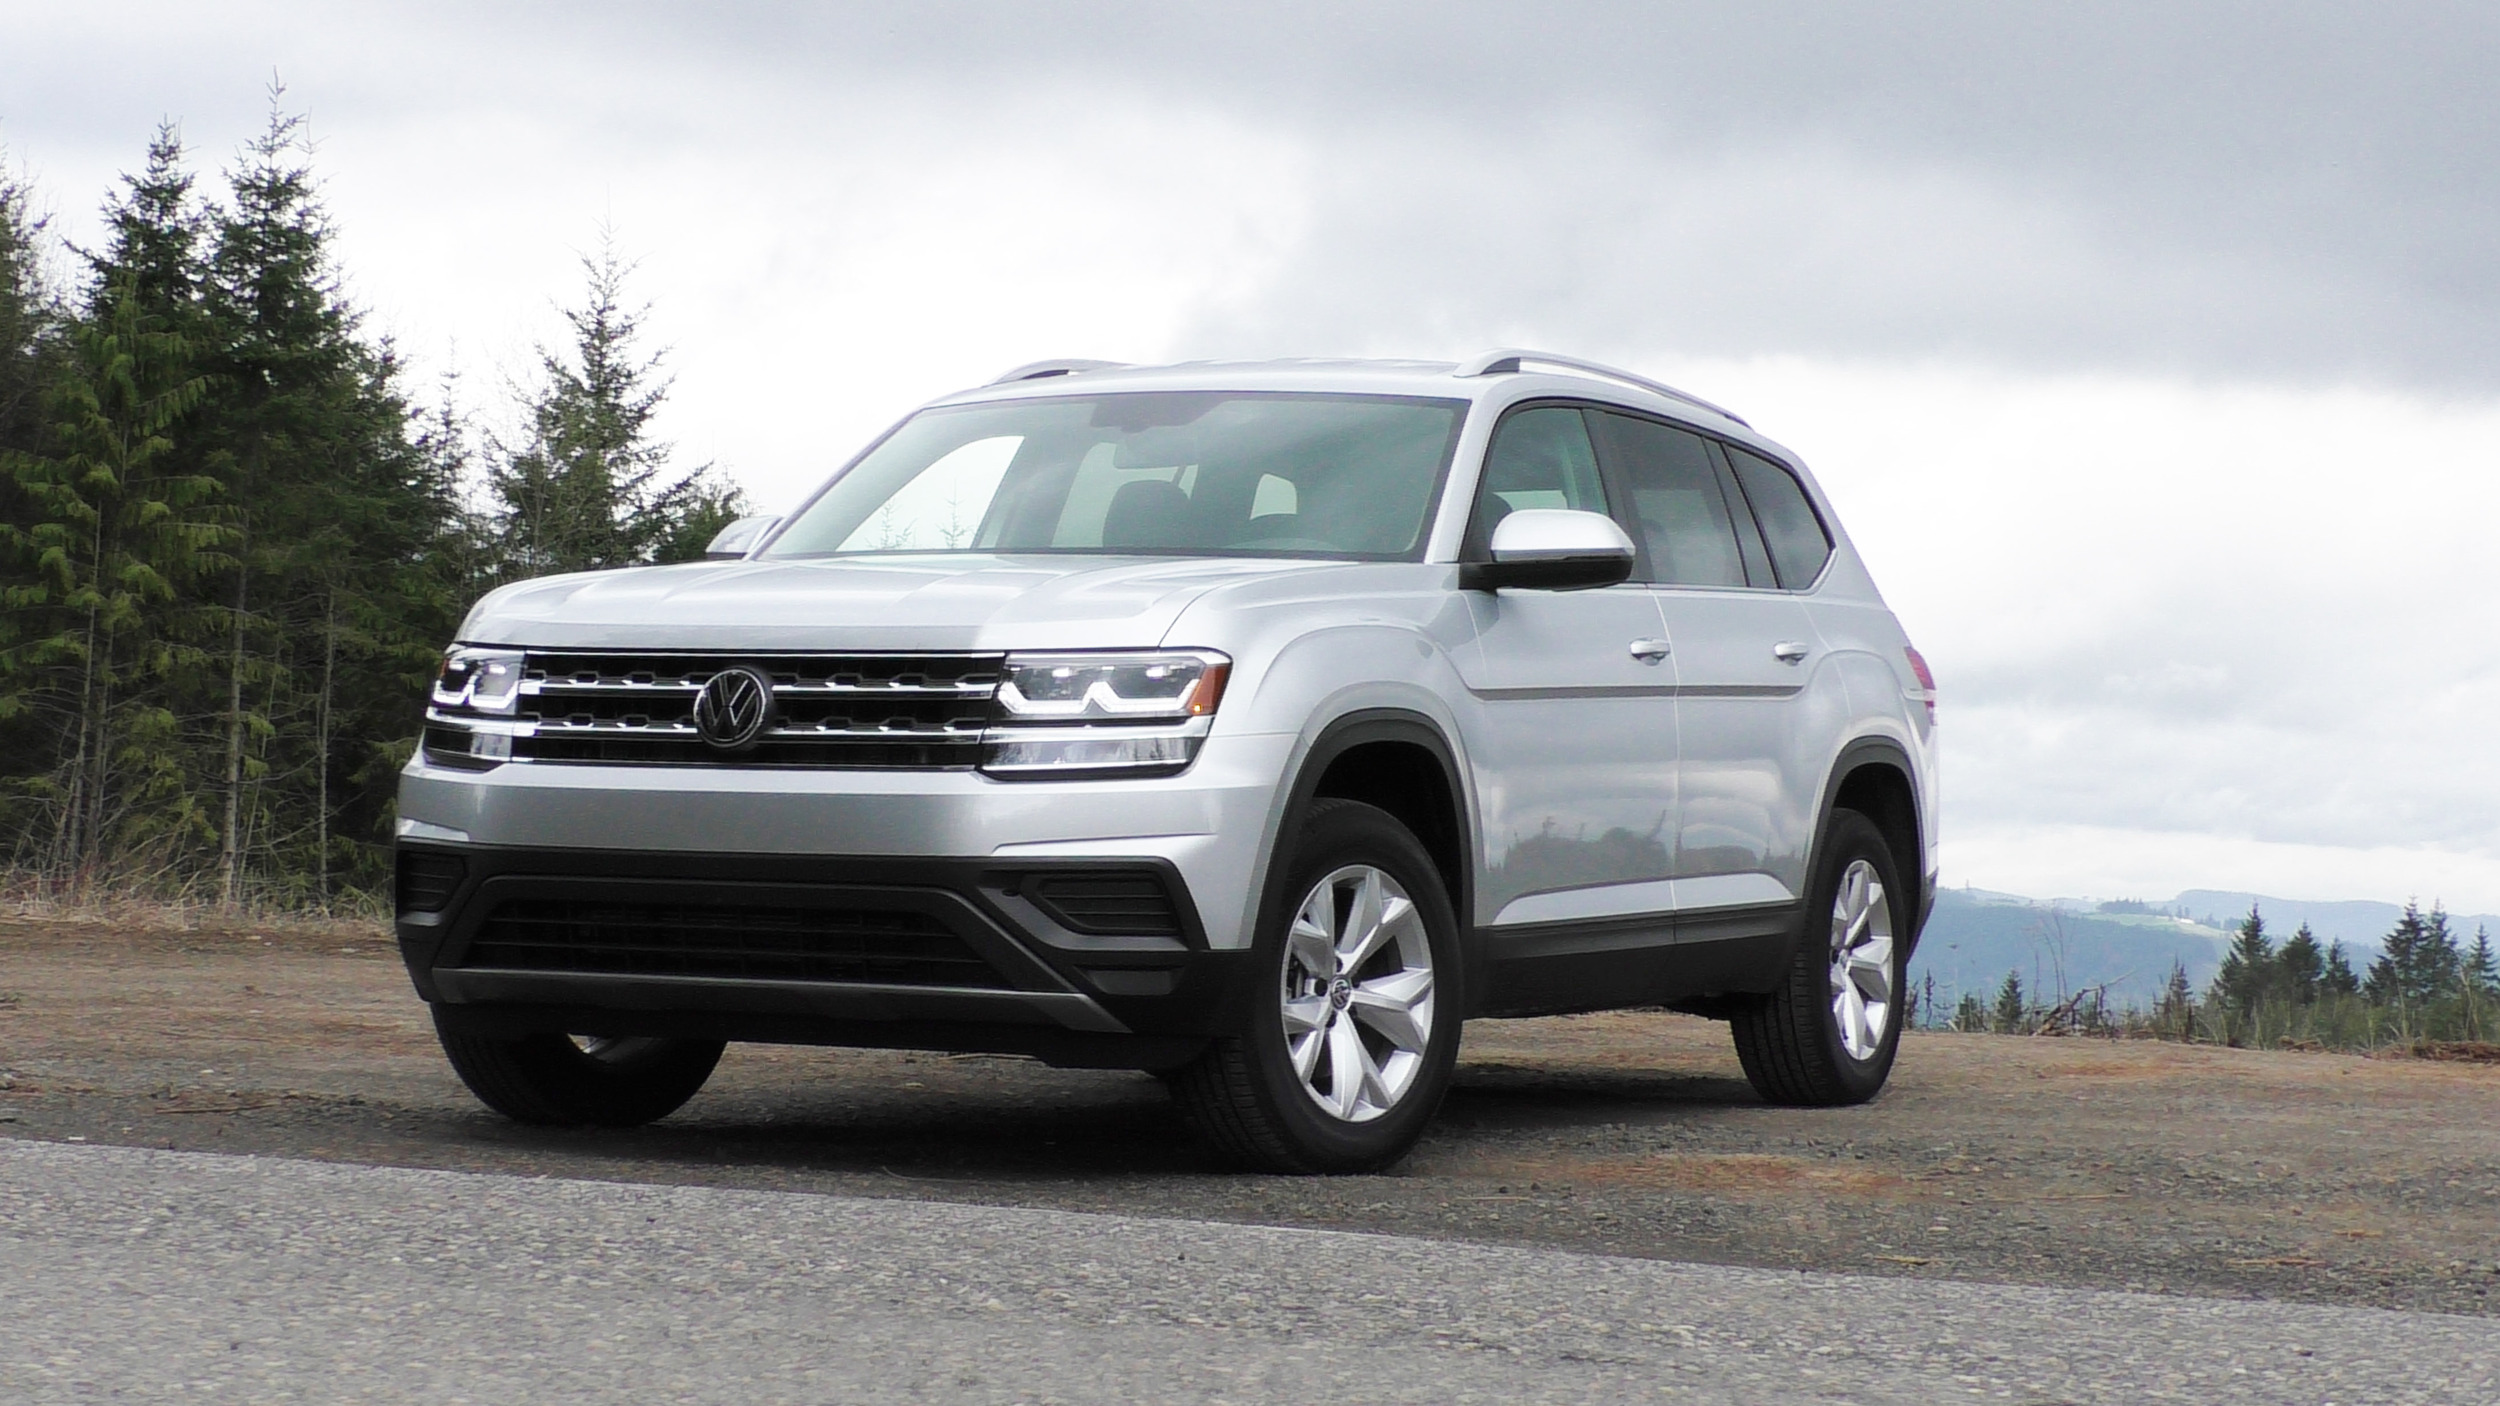 2019 VW Atlas S 2 0T Review | Fuel economy, interior space, features